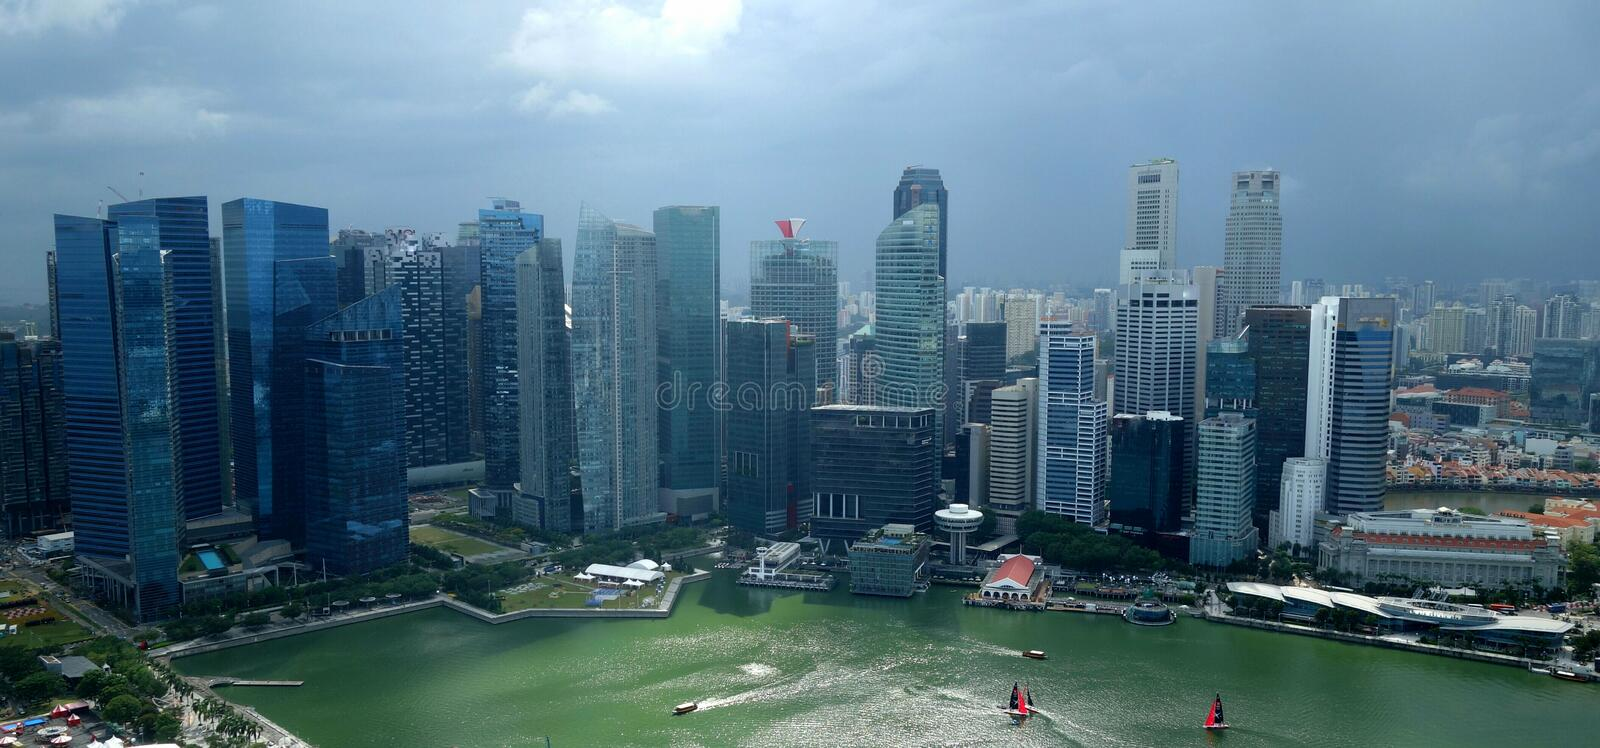 Singapore city skyline after a storm stock photography